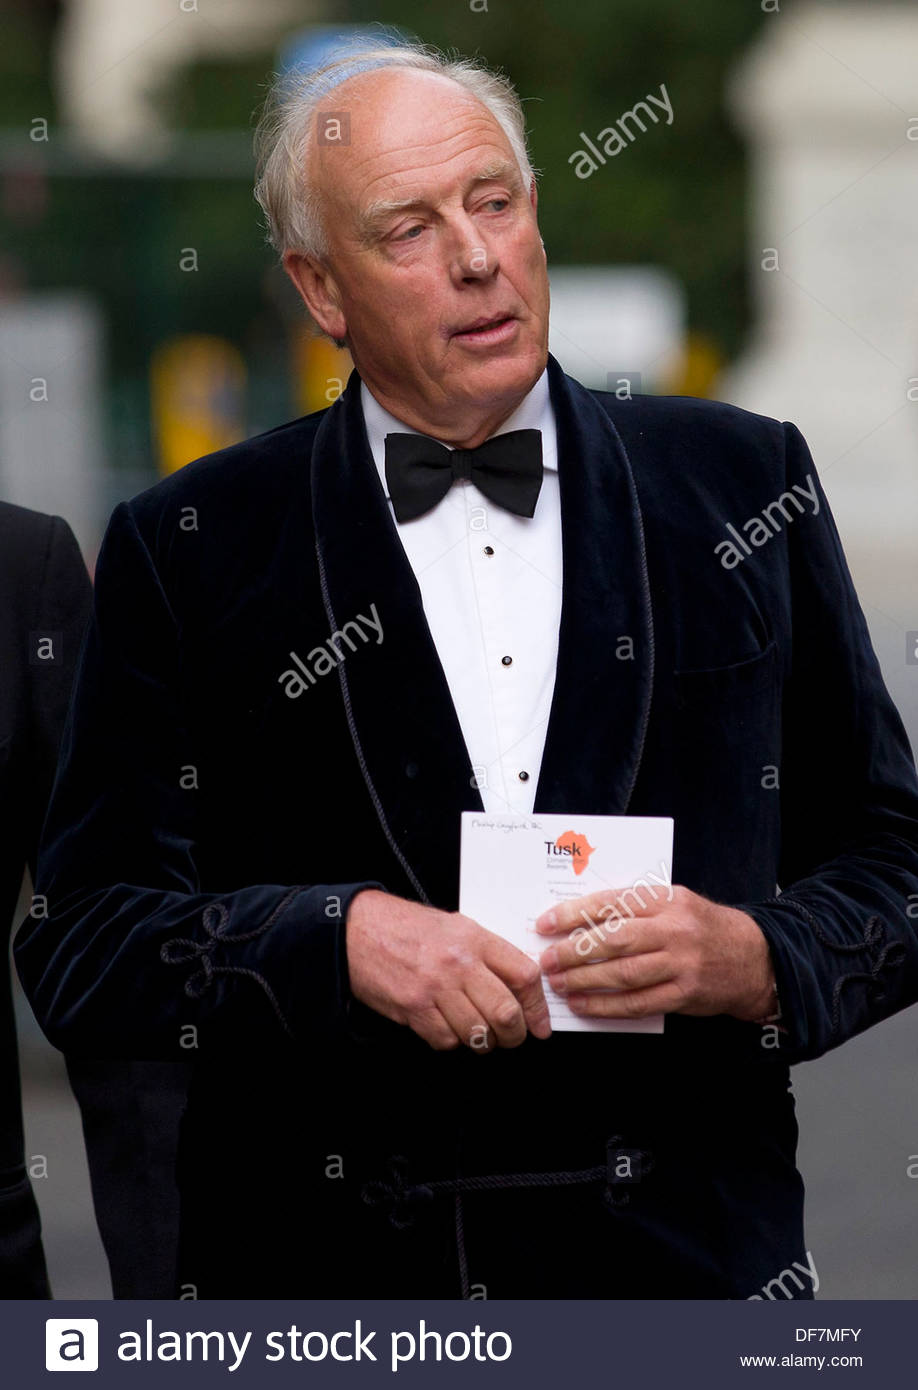 UK, London : Philip Cayford QC pictured in London on 13.09.2013. - Stock Image